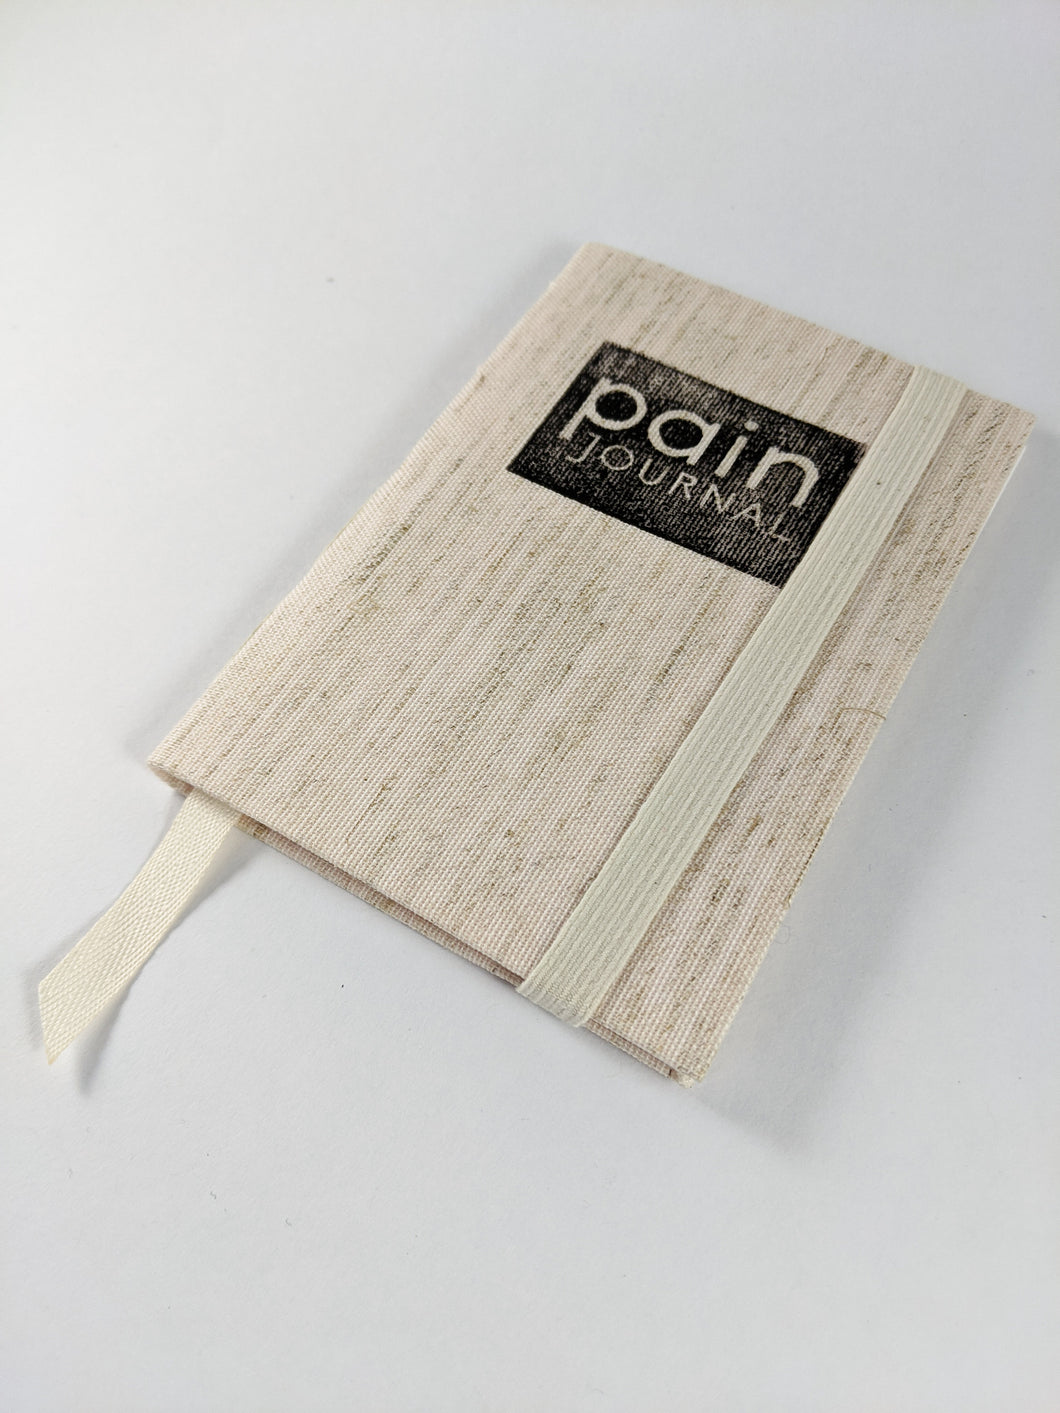 Pain and Symptom Journal in Natural Linen Cloth and White Thread